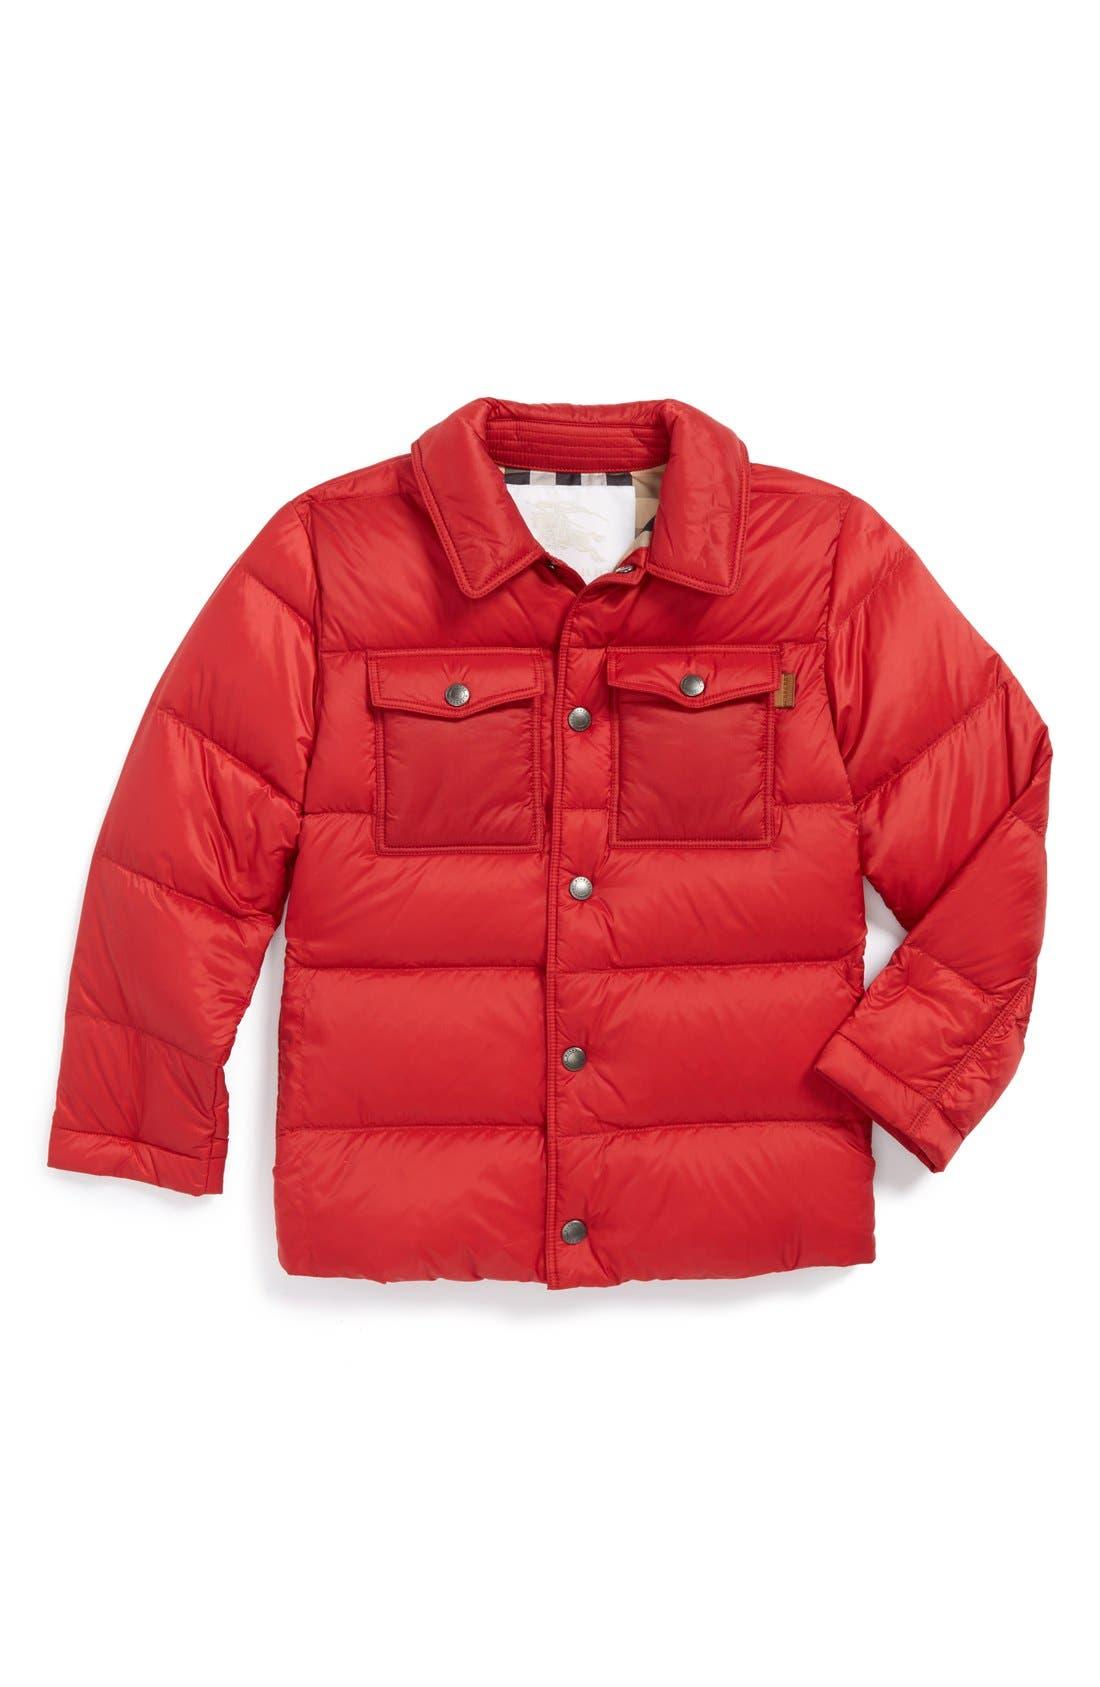 Main Image - Burberry Quilted Down Jacket (Little Boys & Big Boys)